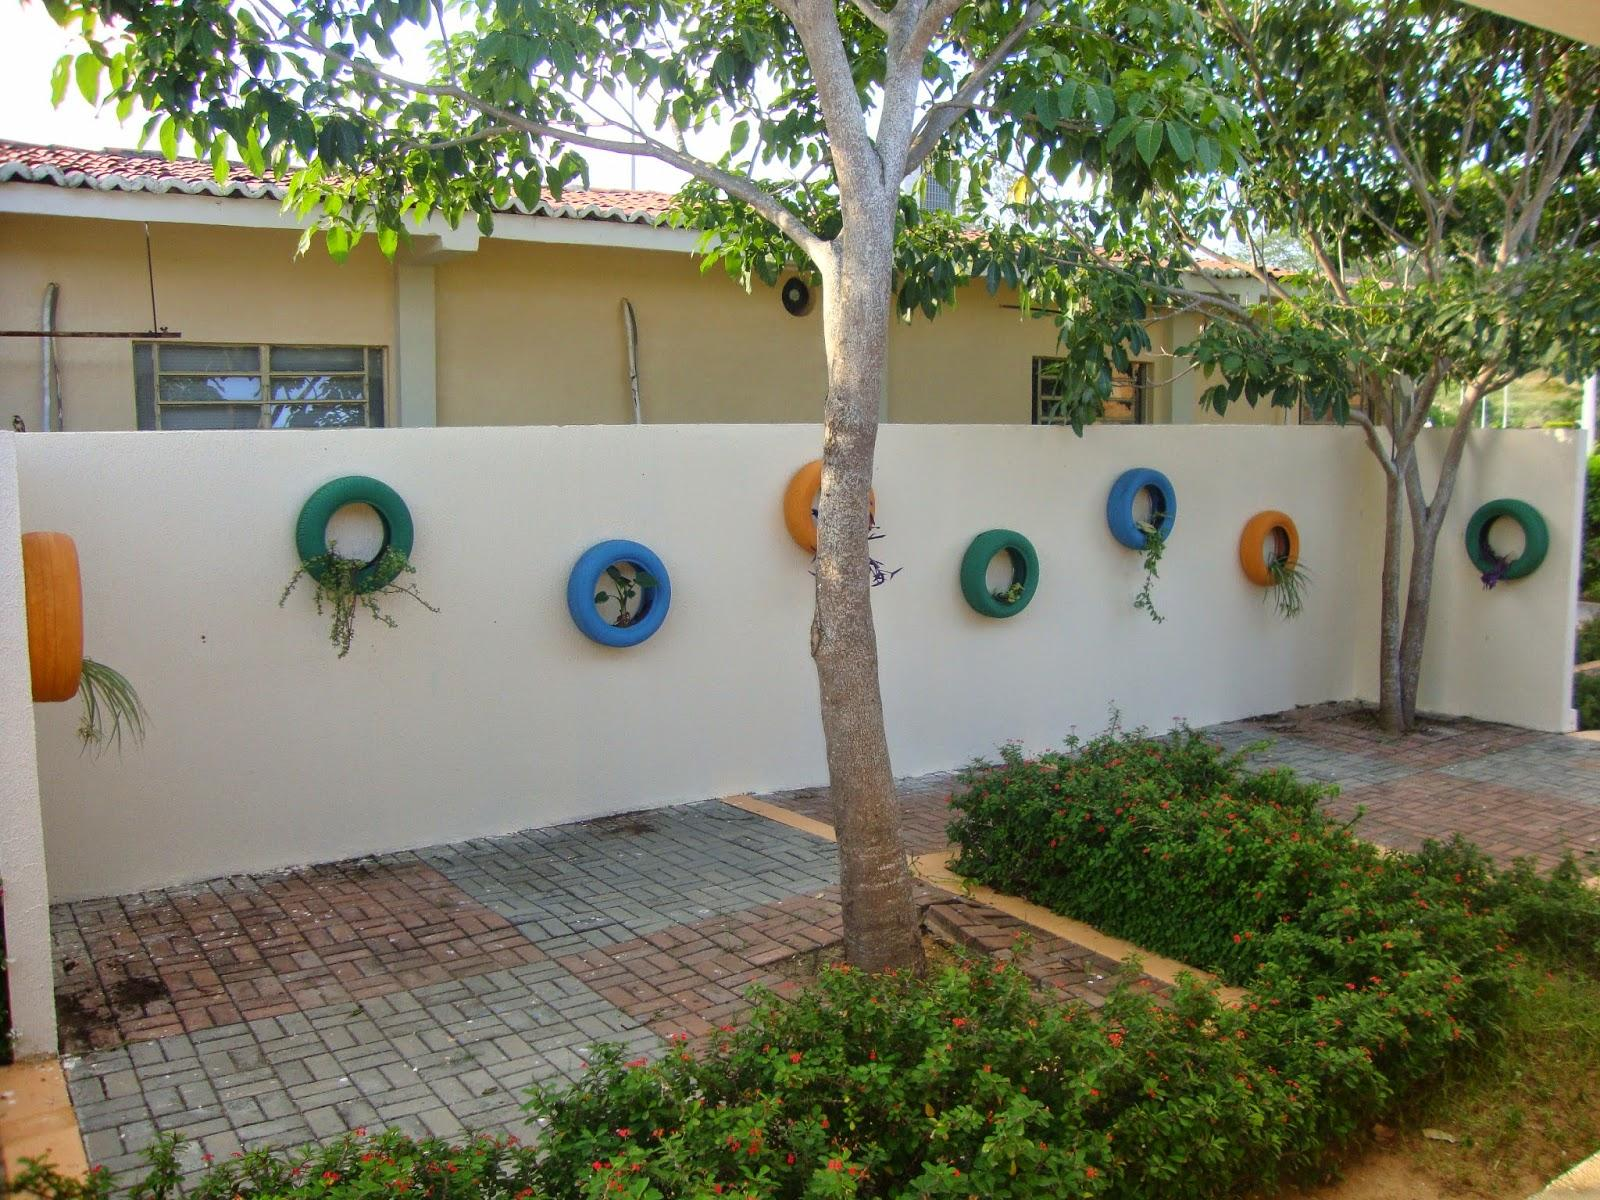 50 jardins com pneus fotos lindas e inspiradoras for Decoracion pared exterior jardin